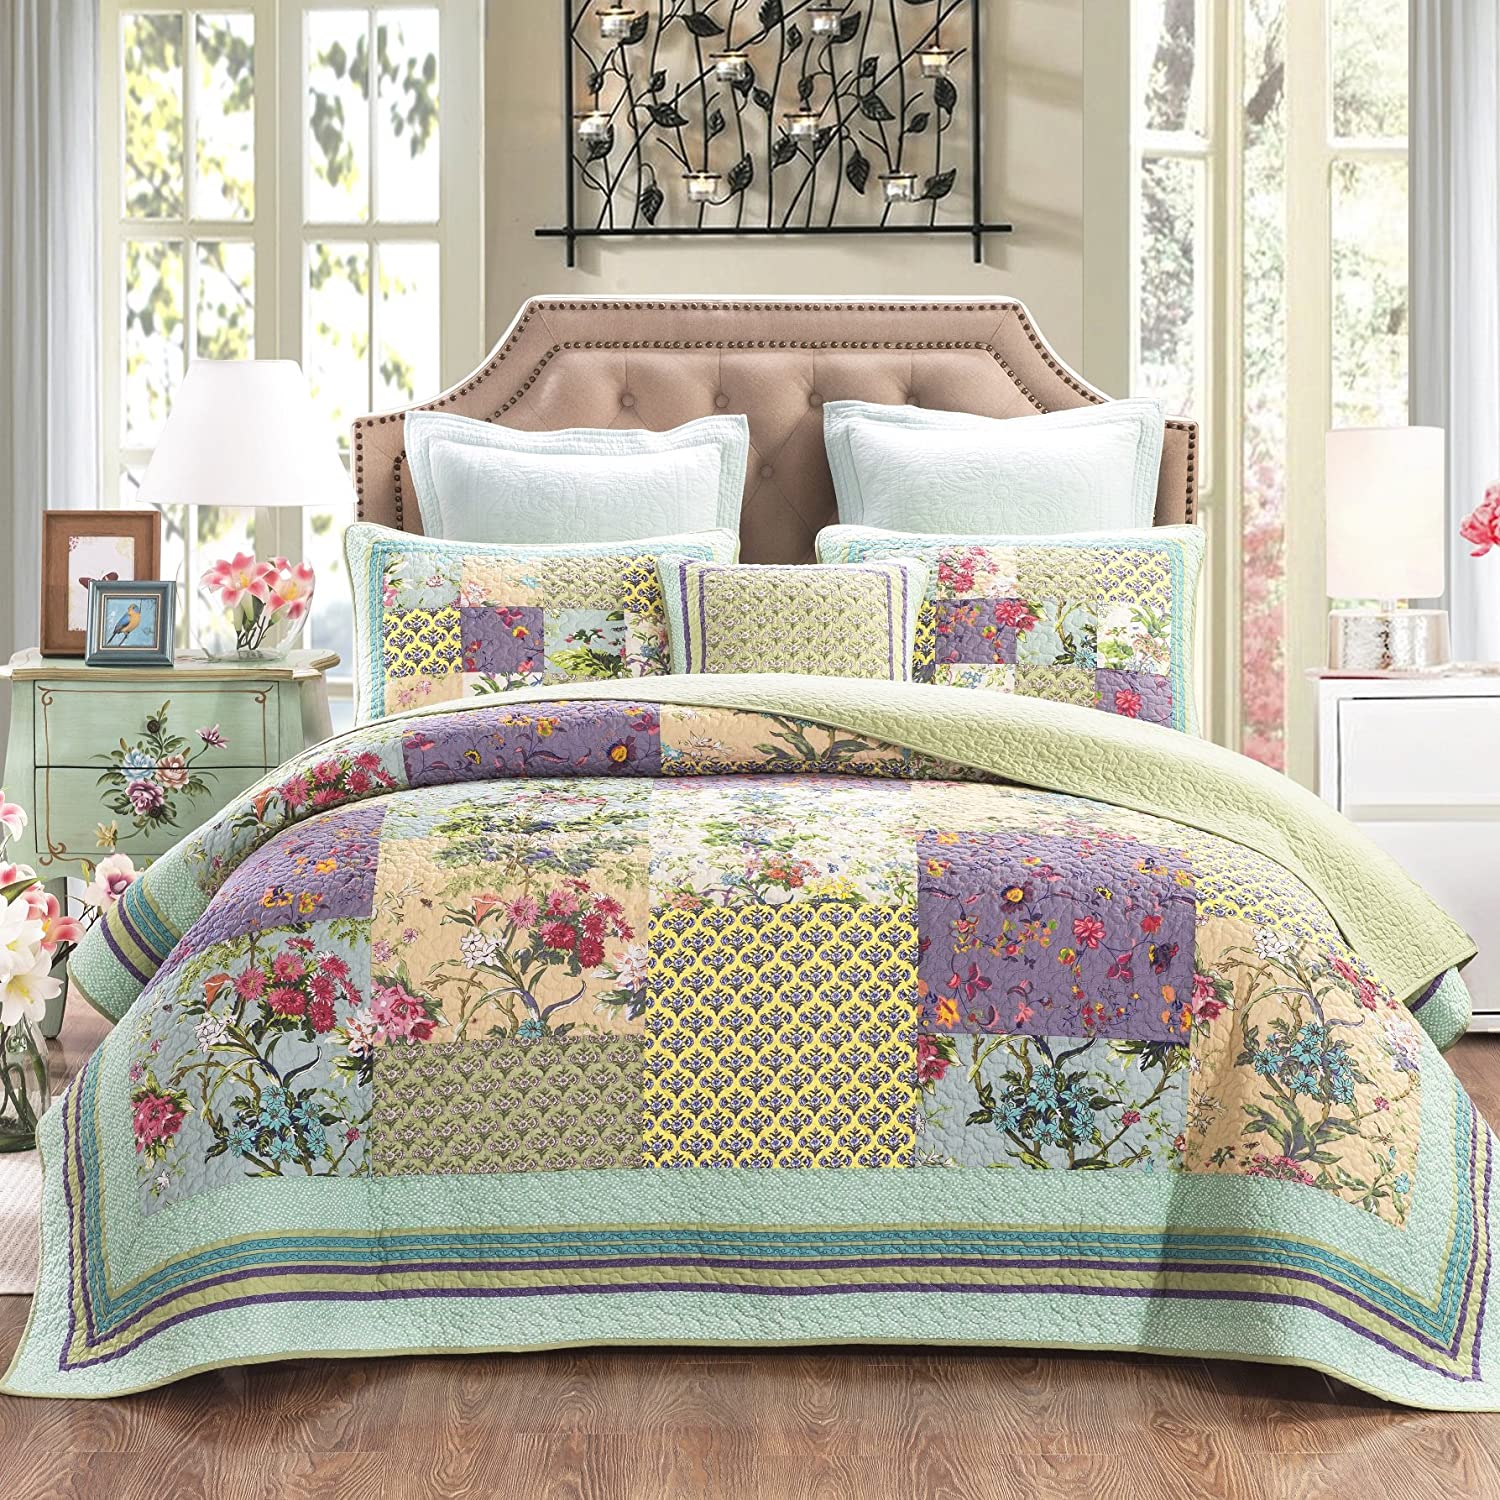 DaDa Bedding Frosted Pastel Gardenia Bohemian Reversible Cotton Real Patchwork Quilted Coverlet Bedspread Set